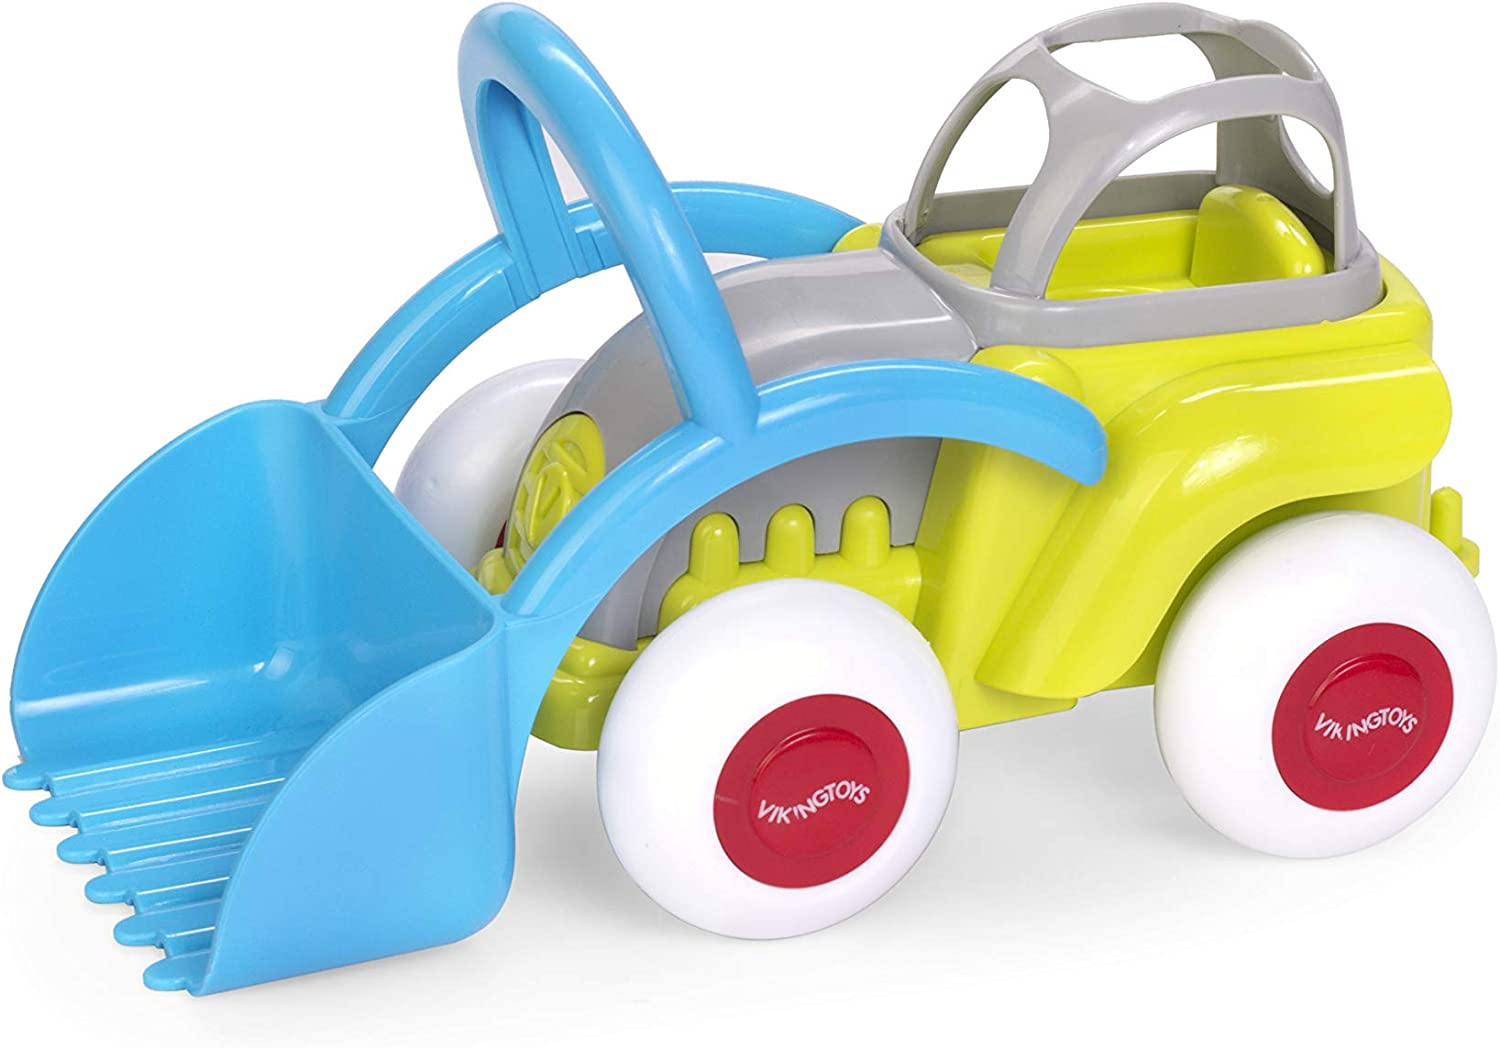 Fashionable Viking Toys - Midi Latest item Tractor Toy Working with Vehicle Scoop 9